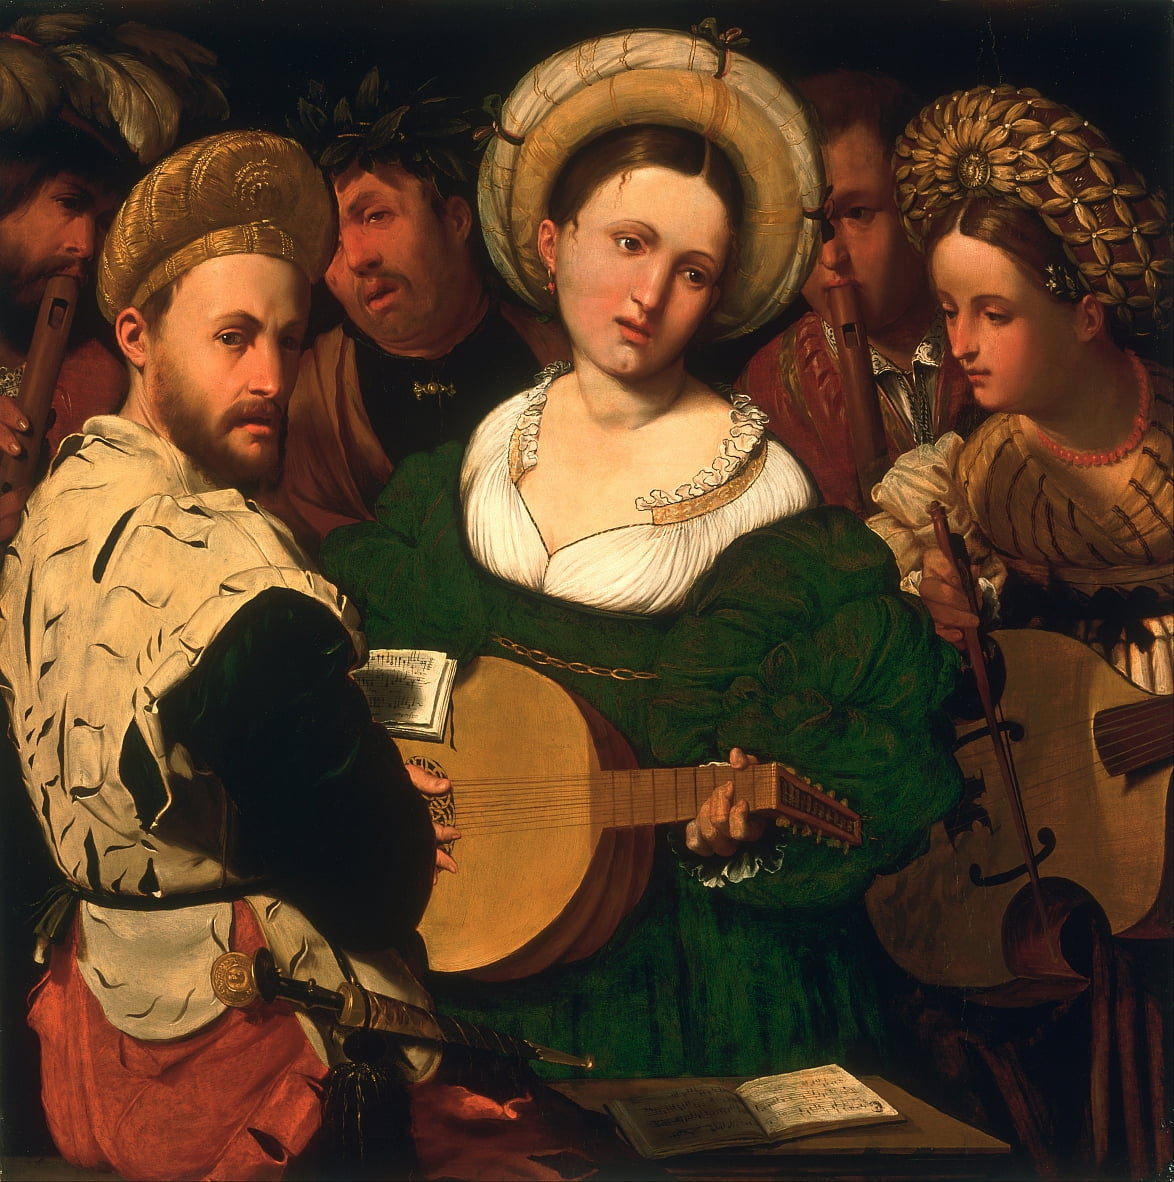 Musical Group by Callisto Piazza